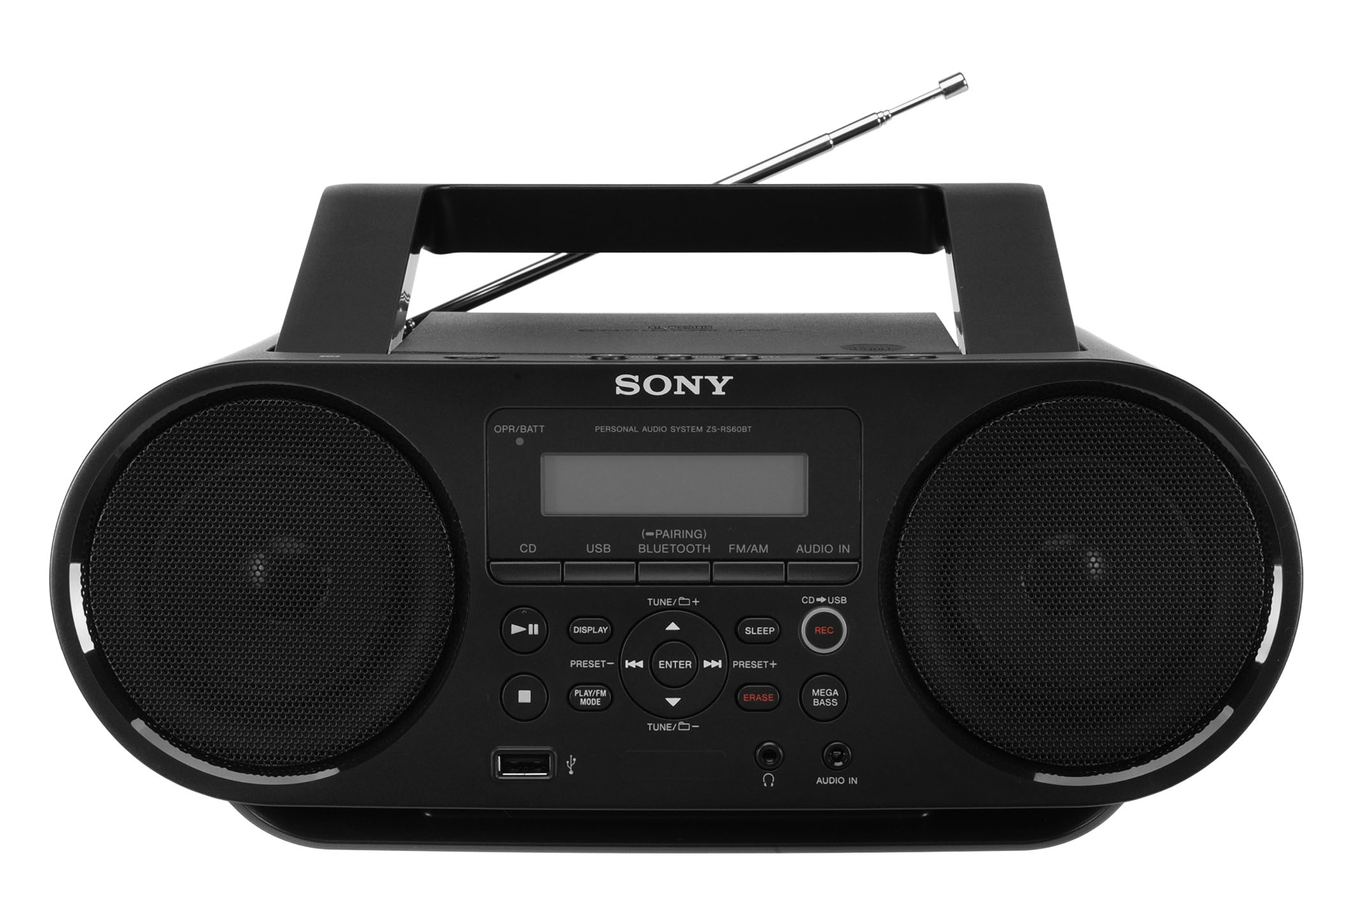 poste radio puissant poste radio portable poste radio portable sur enperdresonlapin cd. Black Bedroom Furniture Sets. Home Design Ideas